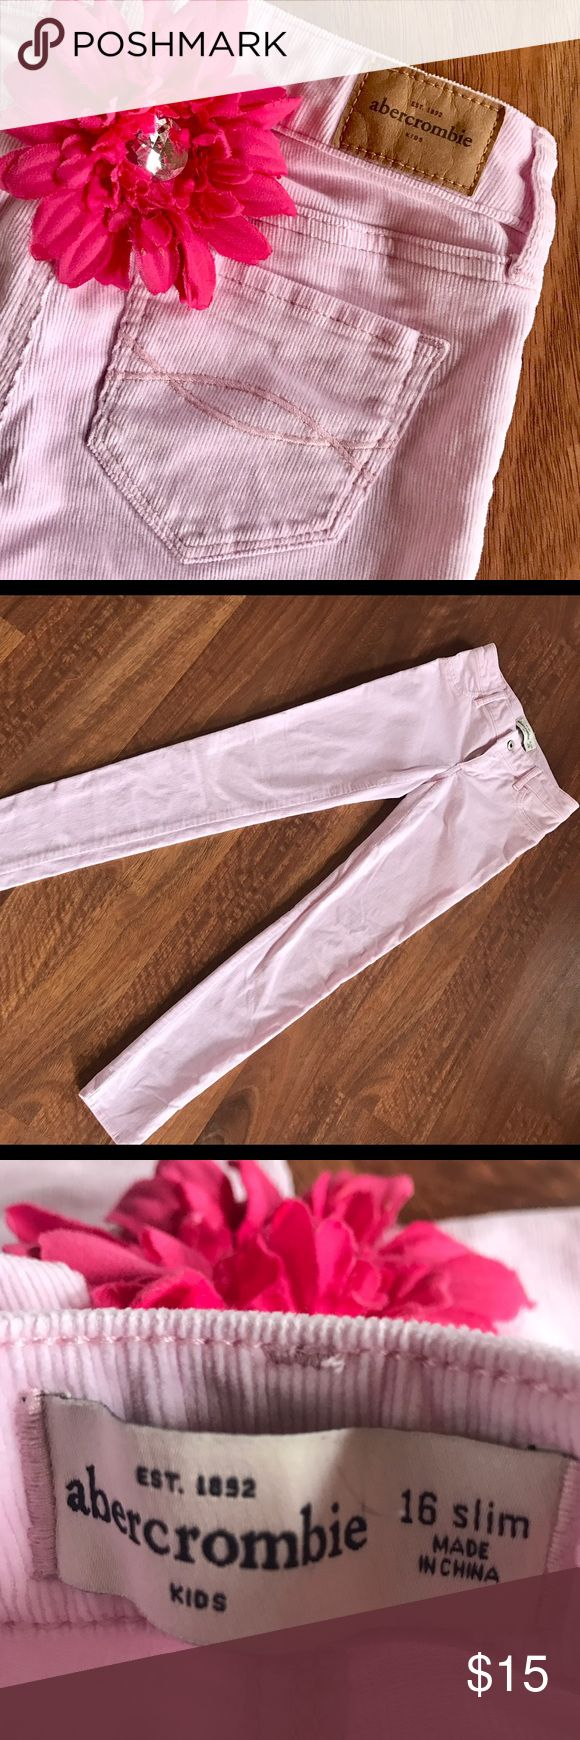 NWOT {Abercrombie} Girl's Corduroy Pants Brand new, never worn pink size 16 slim girl's Abercrombie Kids corduroys. Excellent condition w/ no flaws! Smoke-free home. Bundle and save!!! abercrombie kids Bottoms